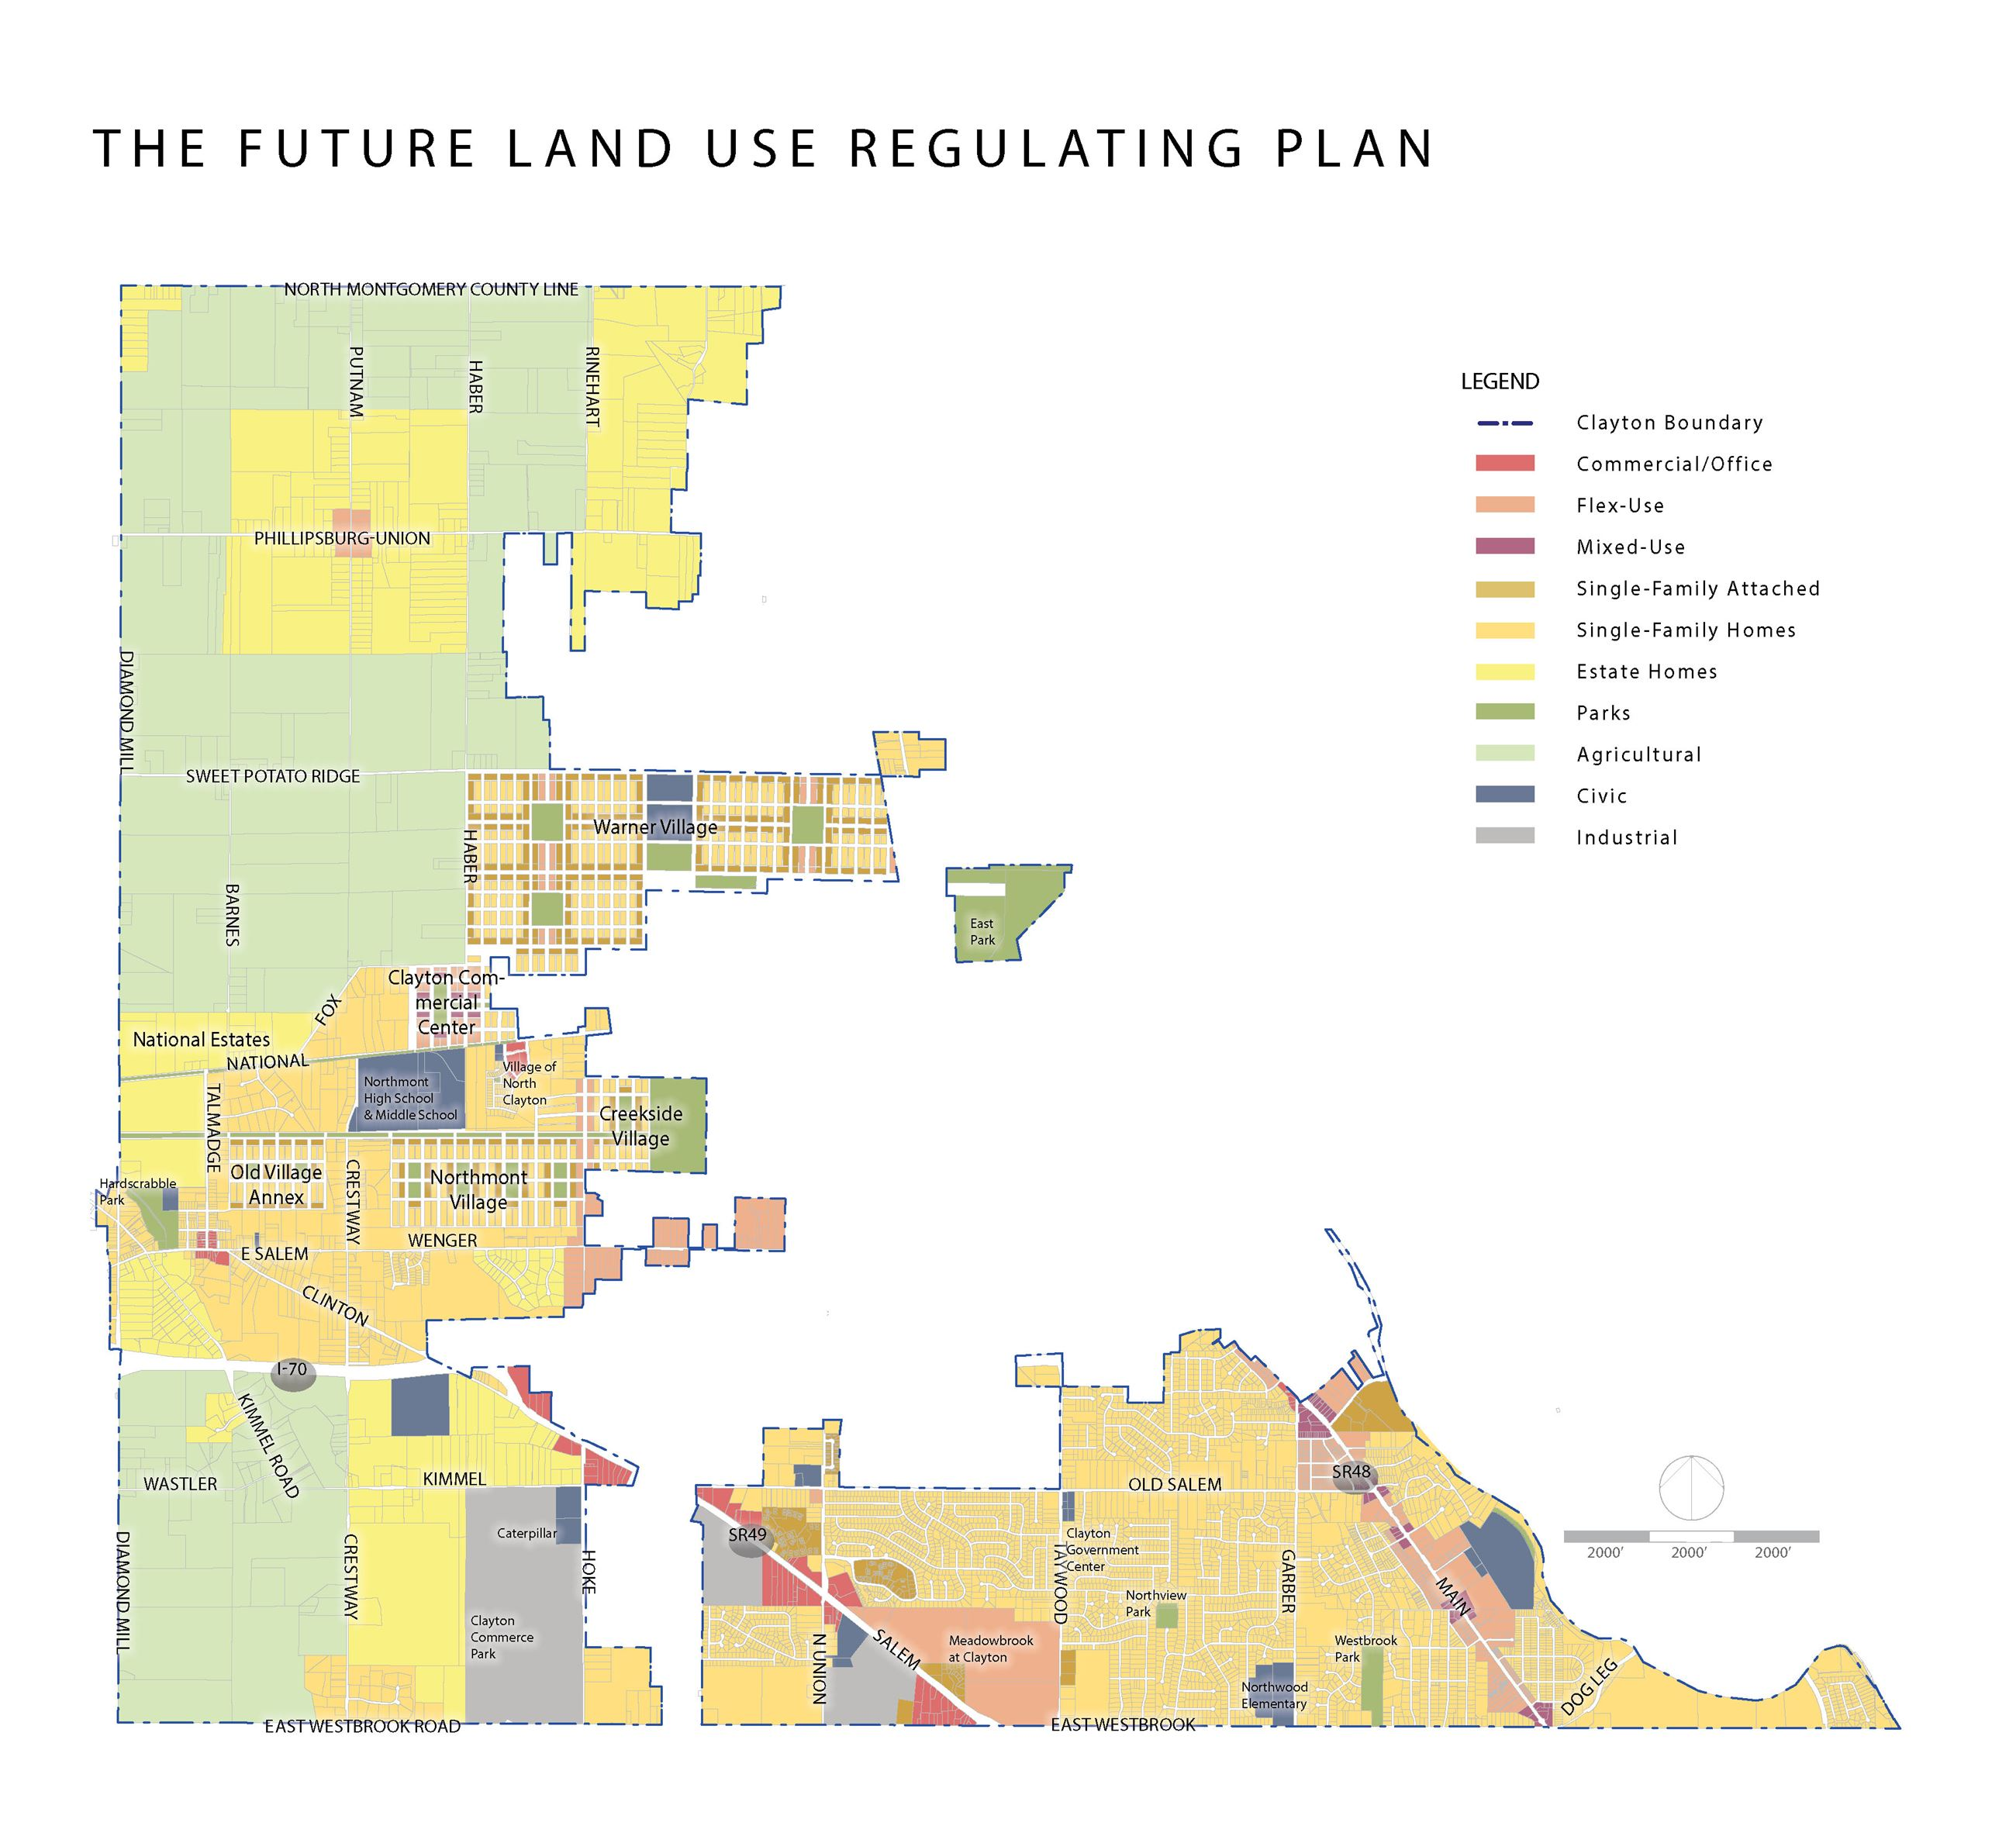 FUTURE LAND USE-REGULATING PLAN